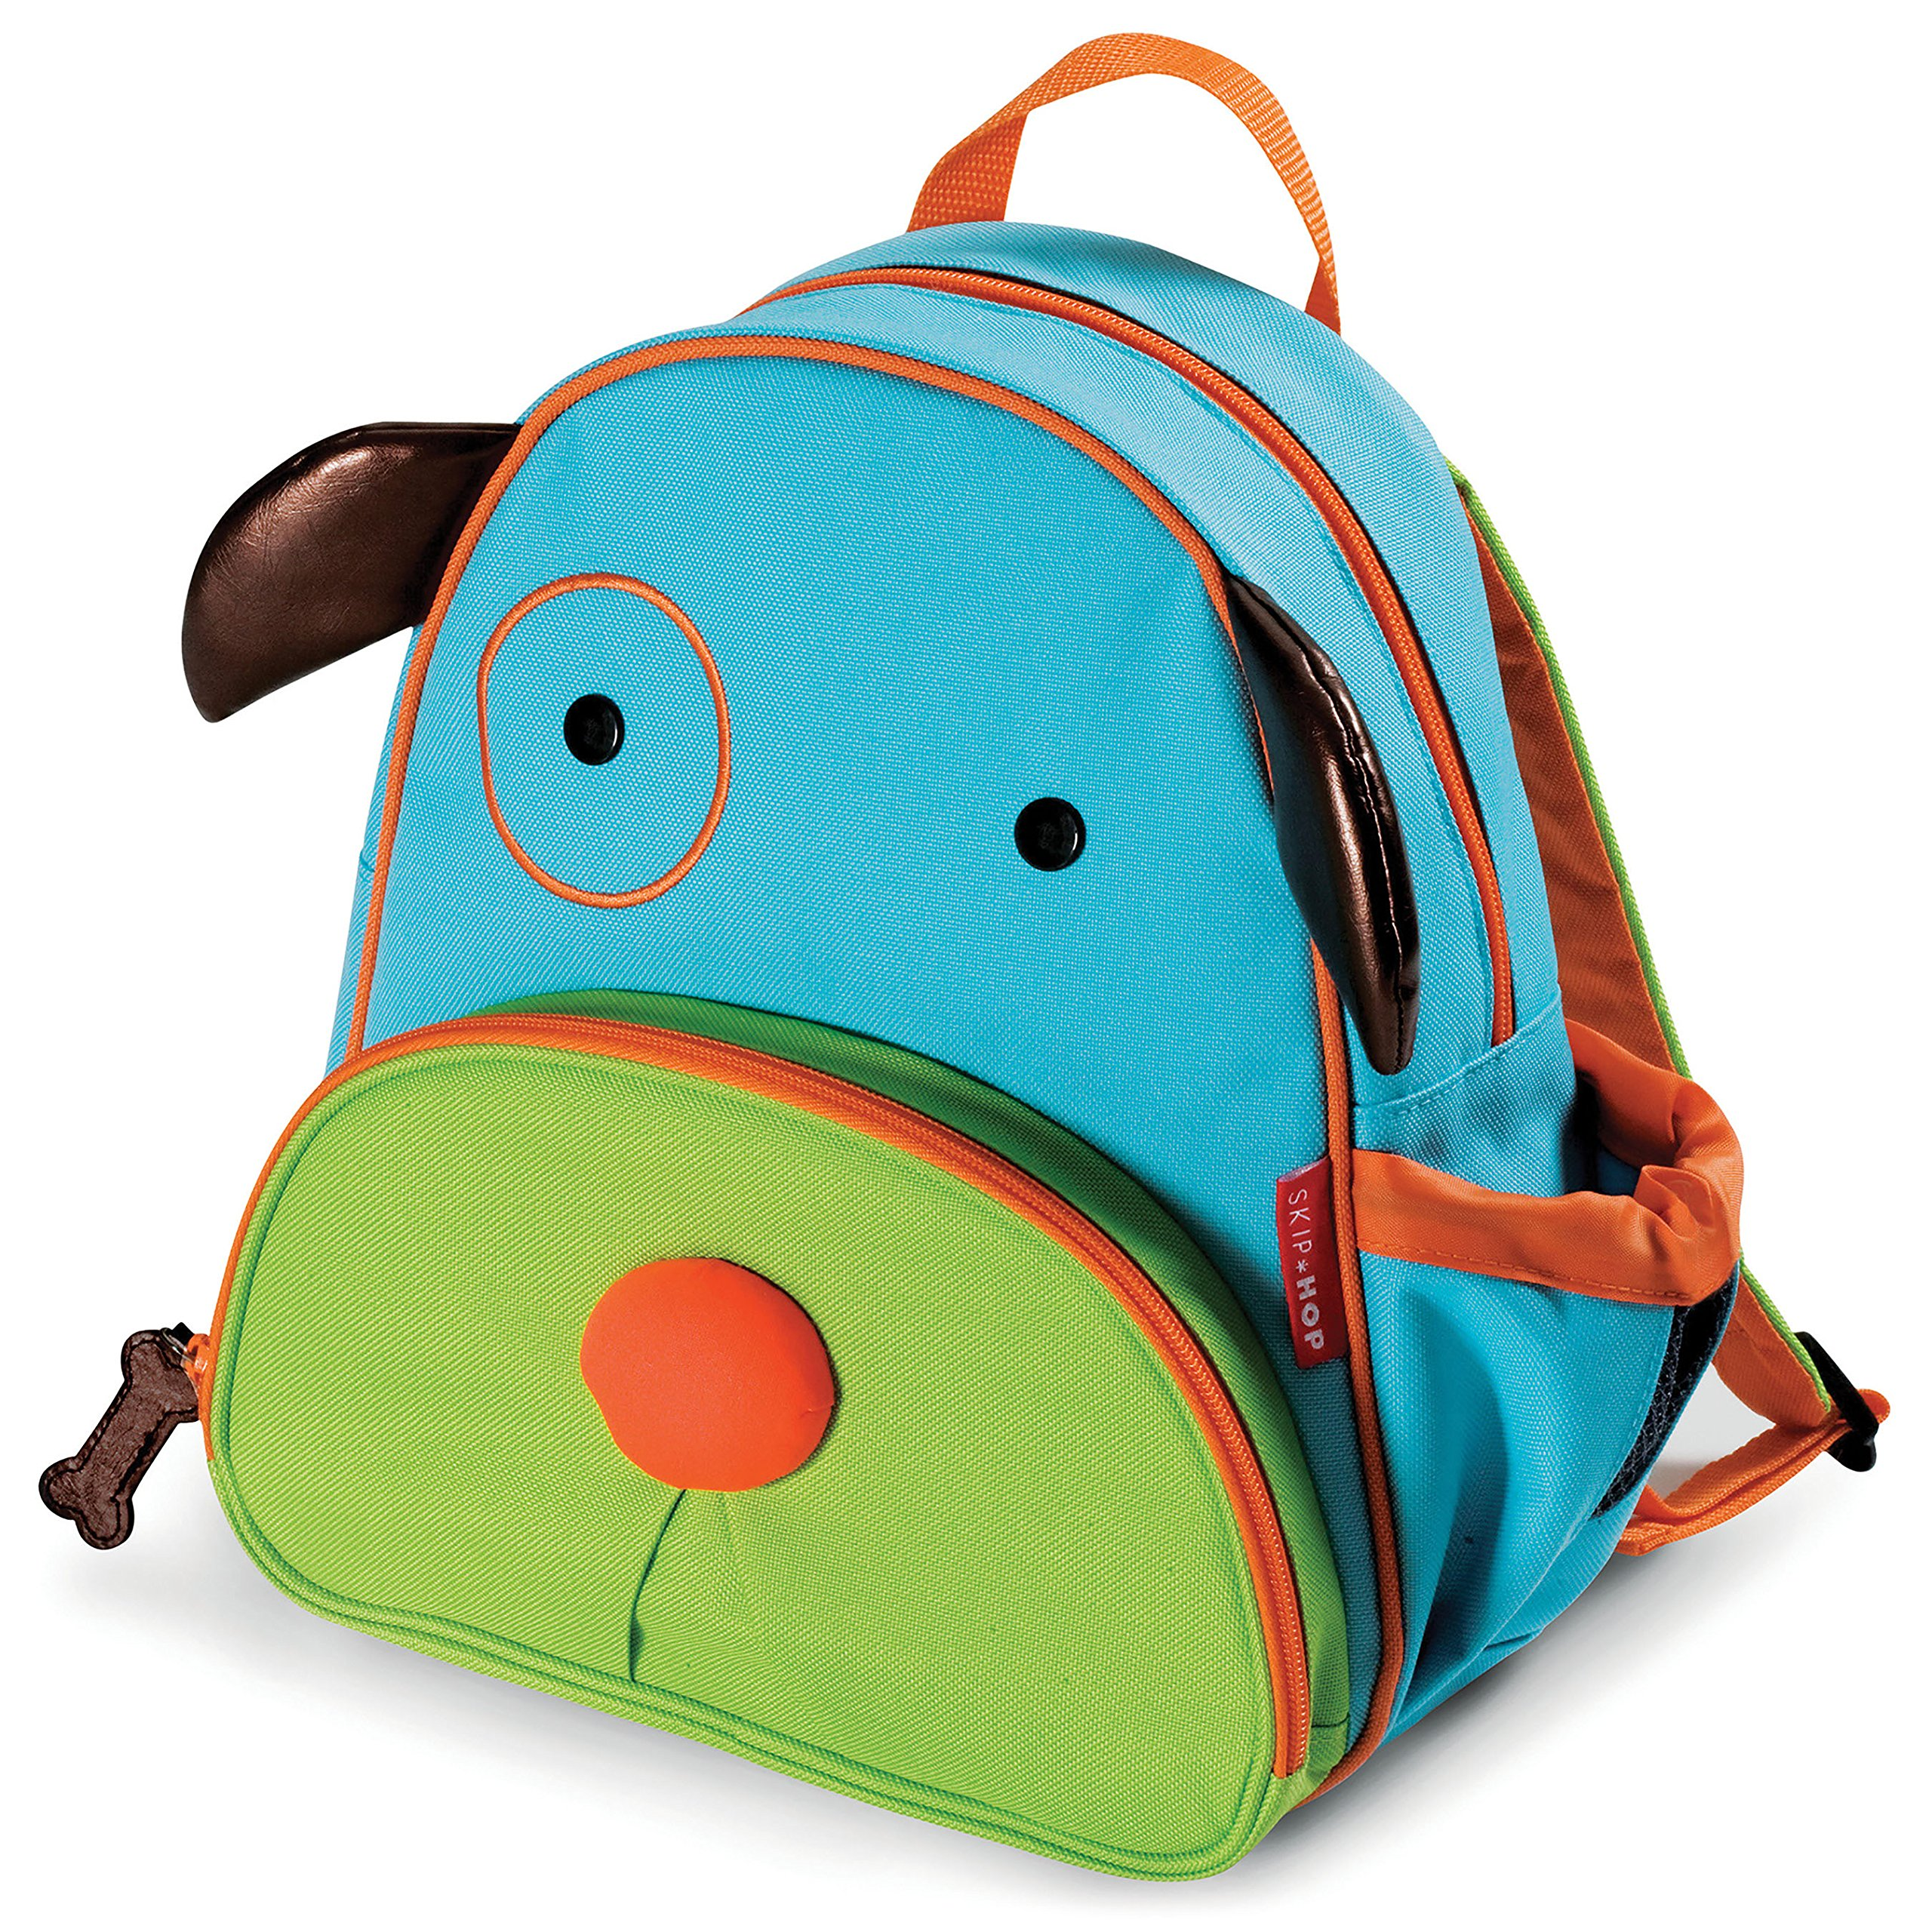 Zoo Insulated Toddler Backpack Darby Dog, 12'' School Bag,